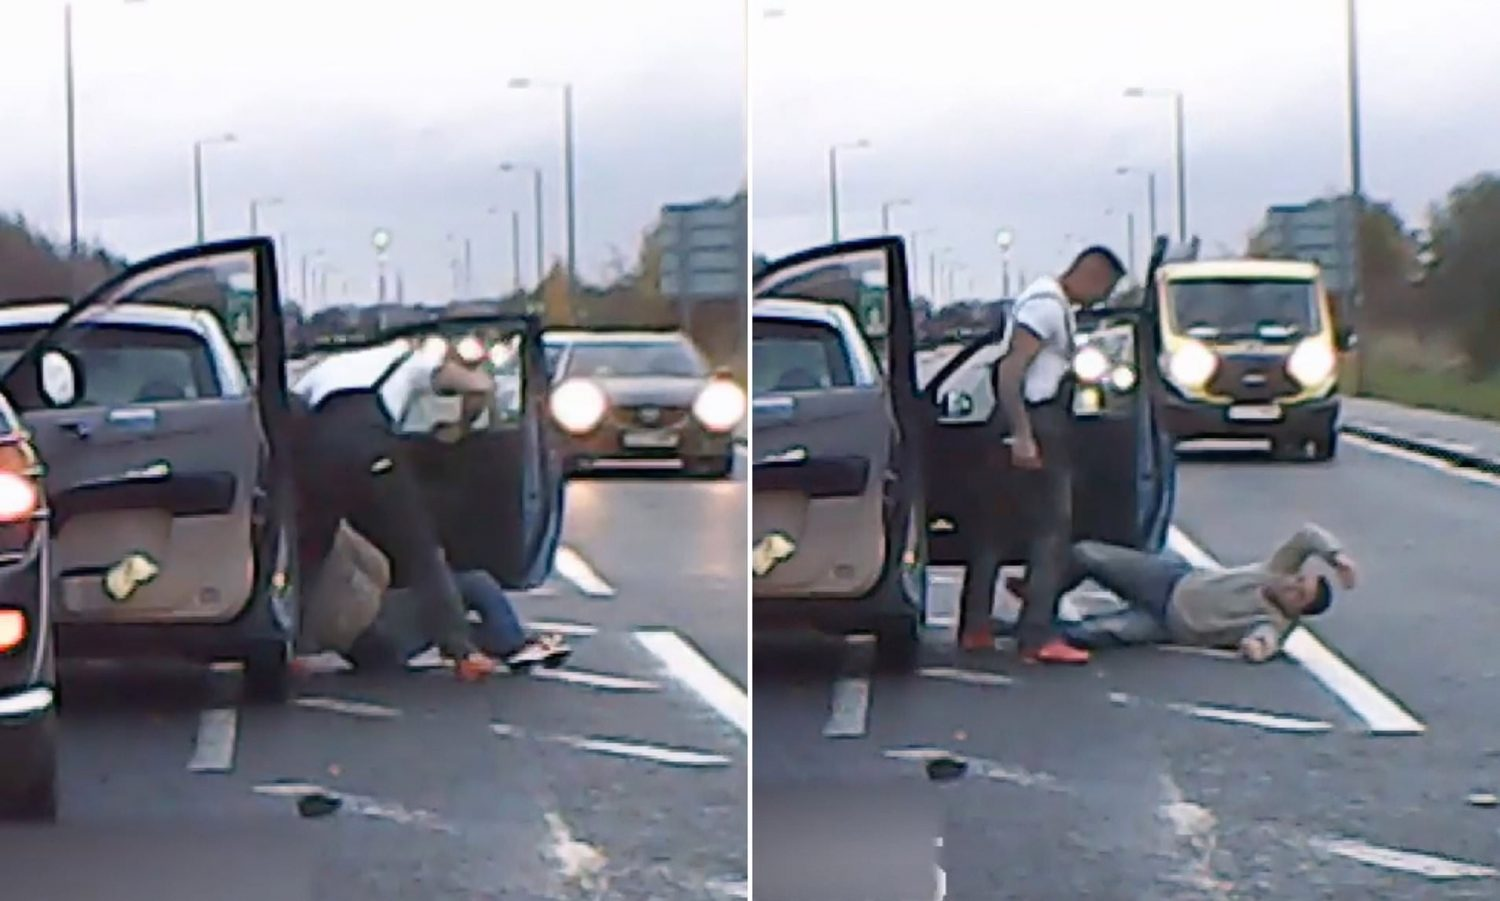 Truck Driver Pulled Man Out Of Car And Beat Him For Making W**Ker Hand Signal